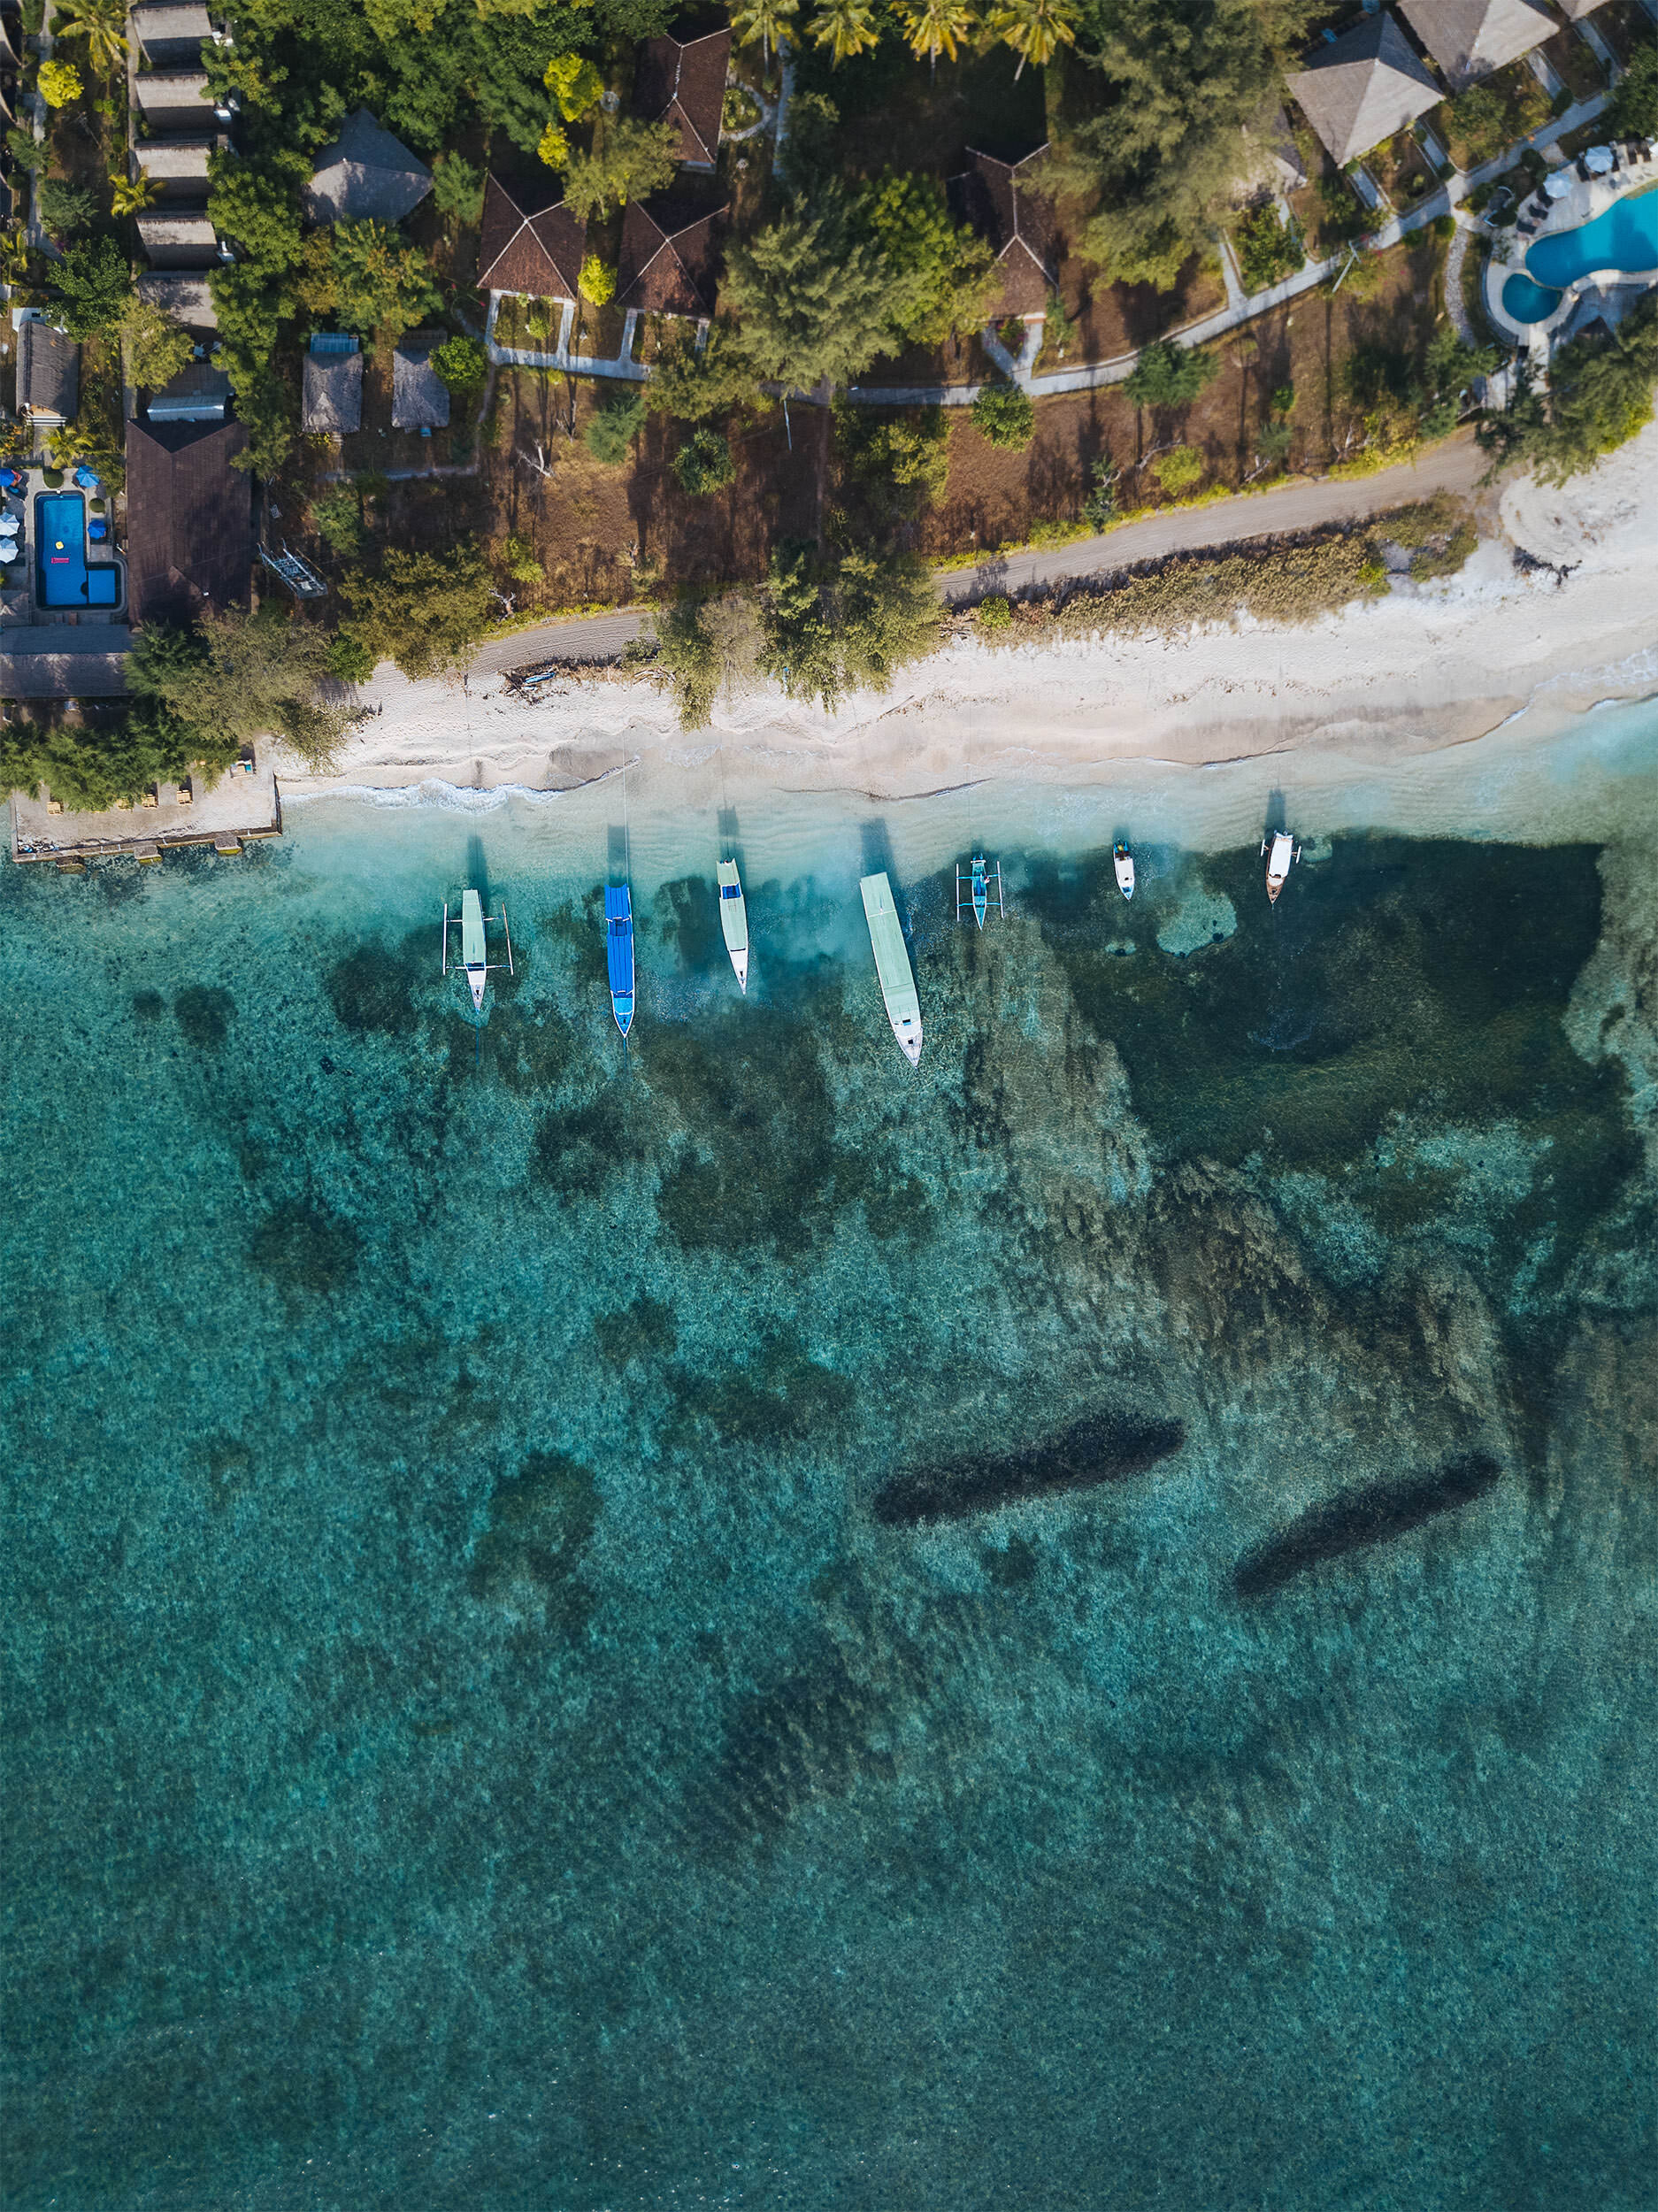 02-travel-indonesia-gili-island-air-drone-beach.jpg